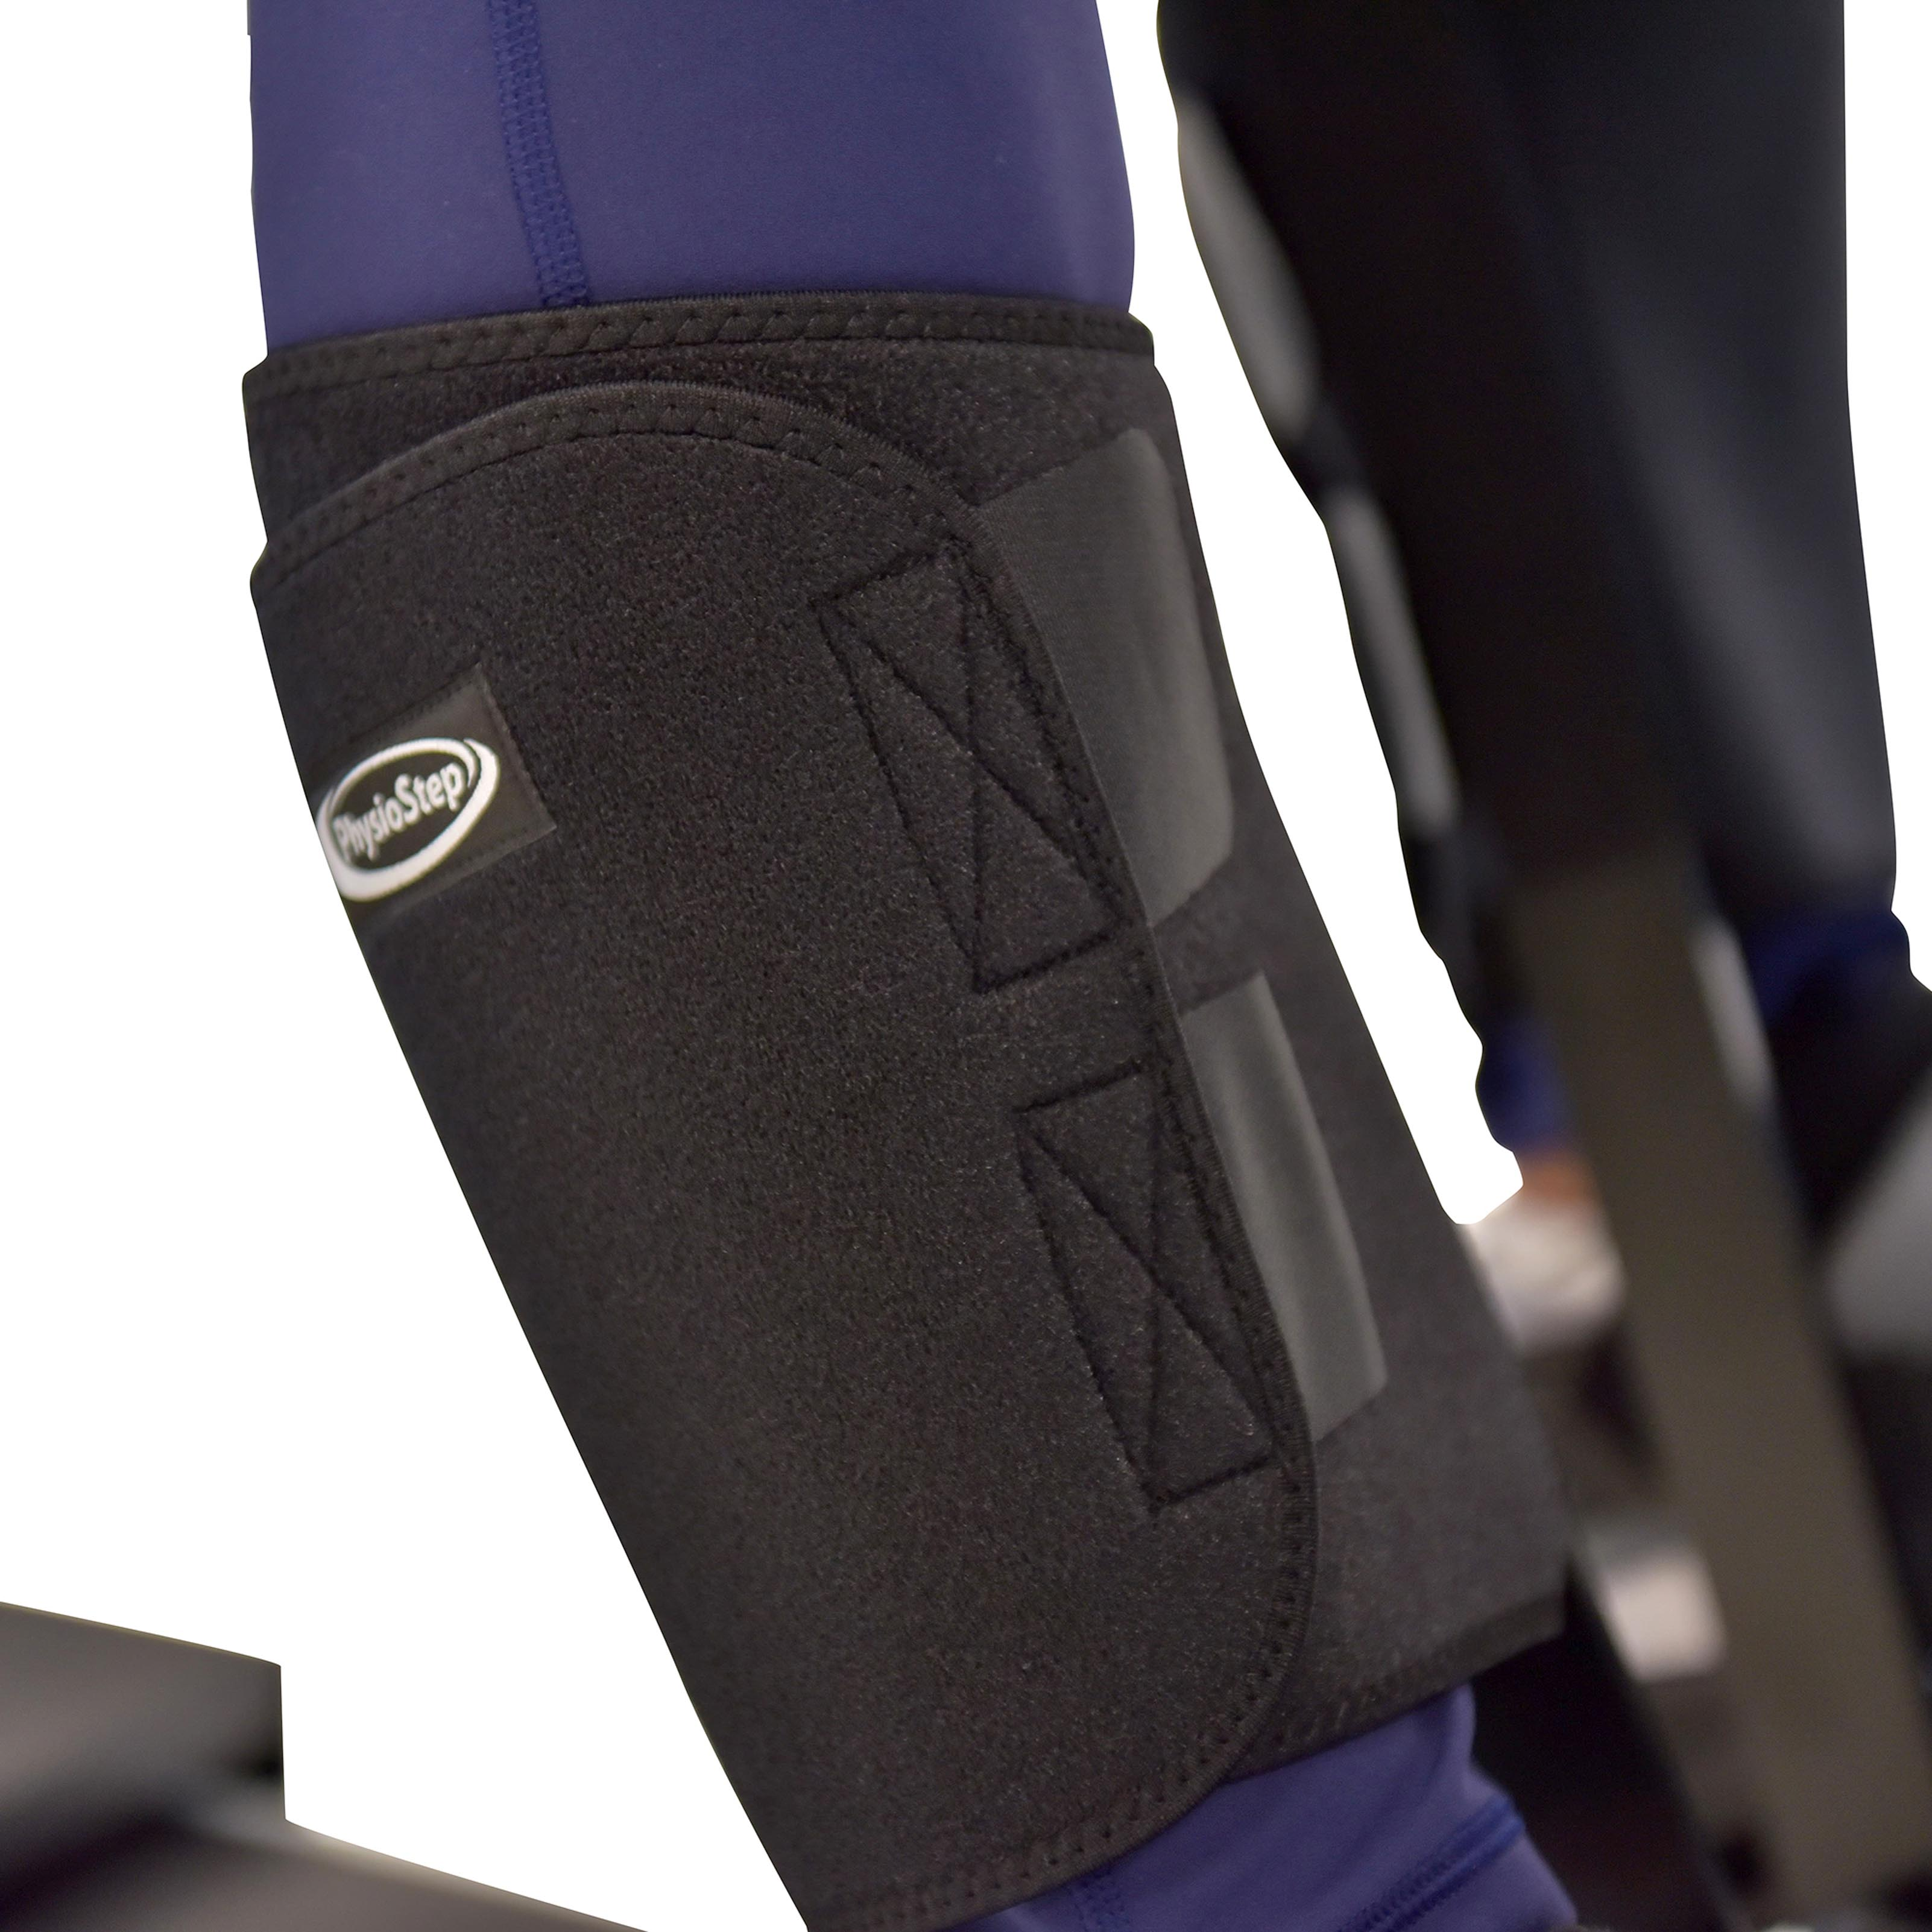 Optional PhysioStep Leg Stabilization Kit